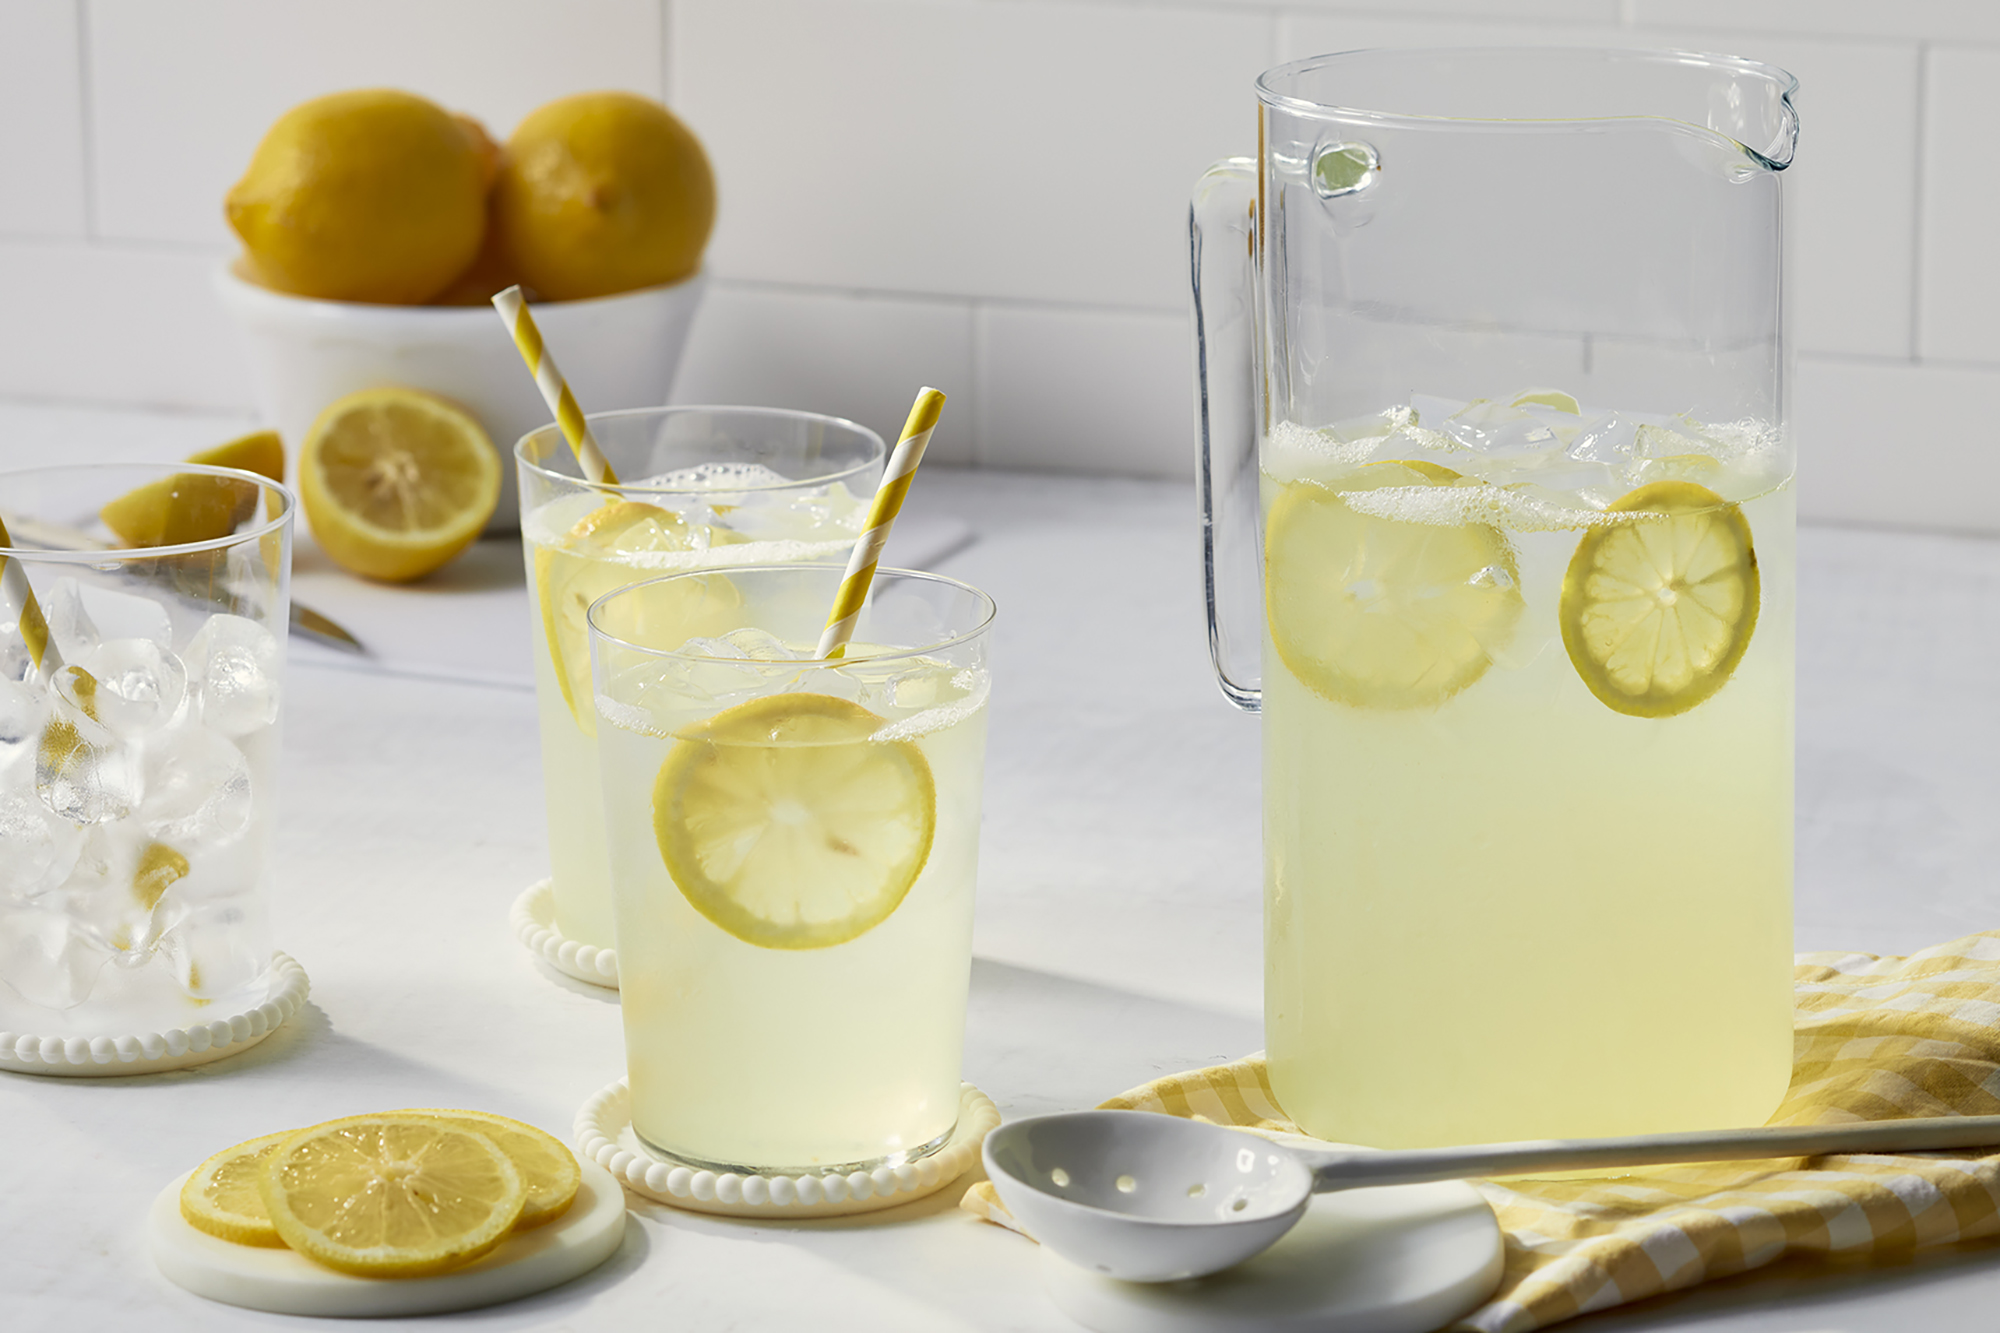 A pitcher and two glasses of old fashion lemonade sit on a white kitchen counter